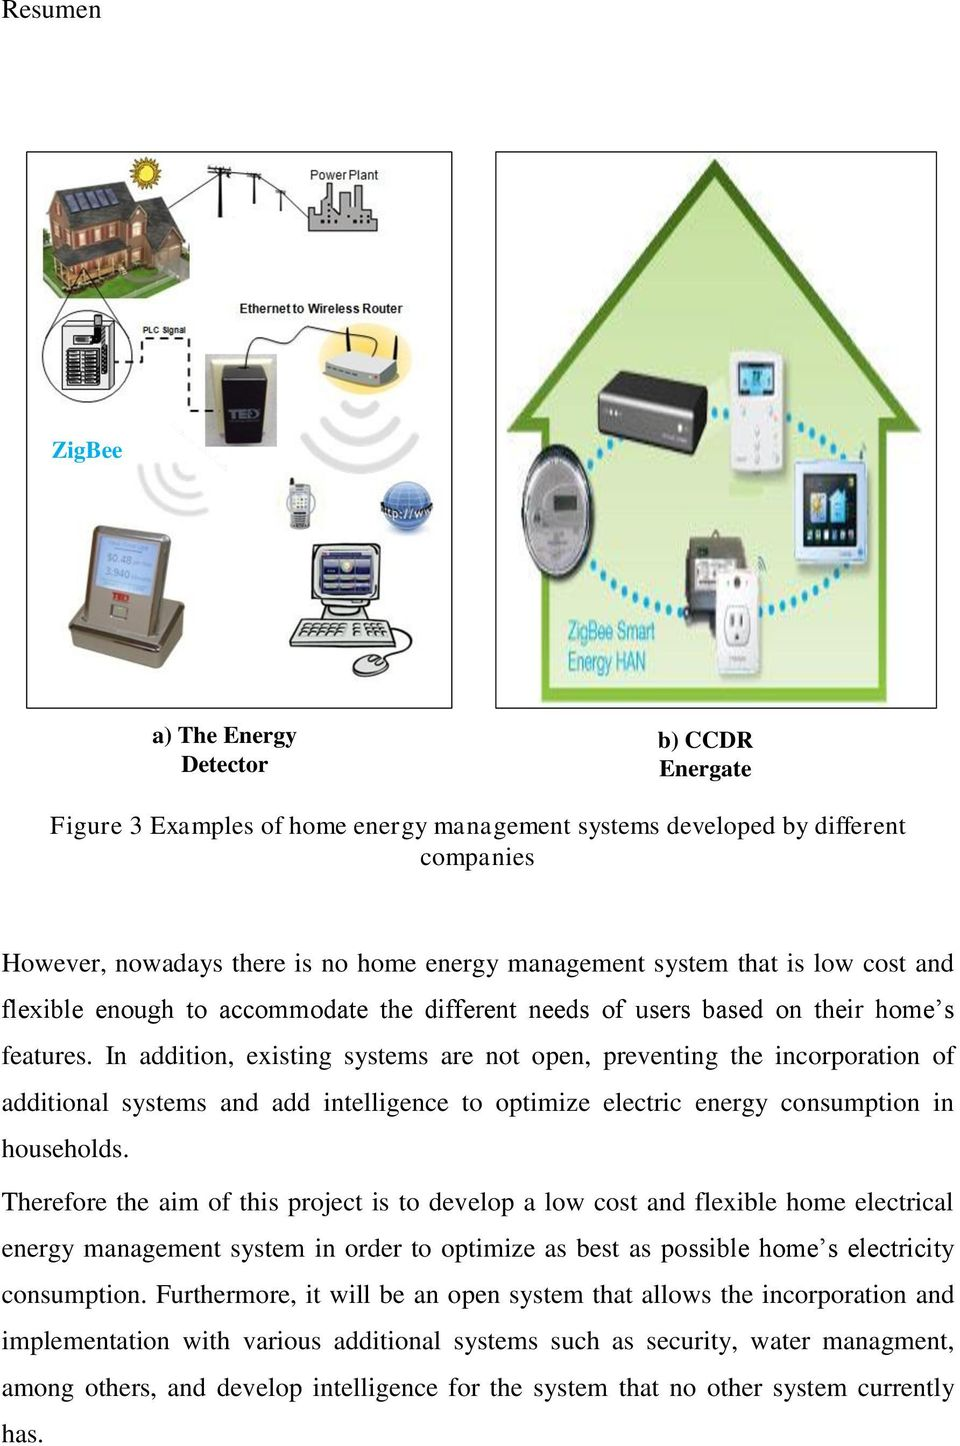 In addition, existing systems are not open, preventing the incorporation of additional systems and add intelligence to optimize electric energy consumption in households.